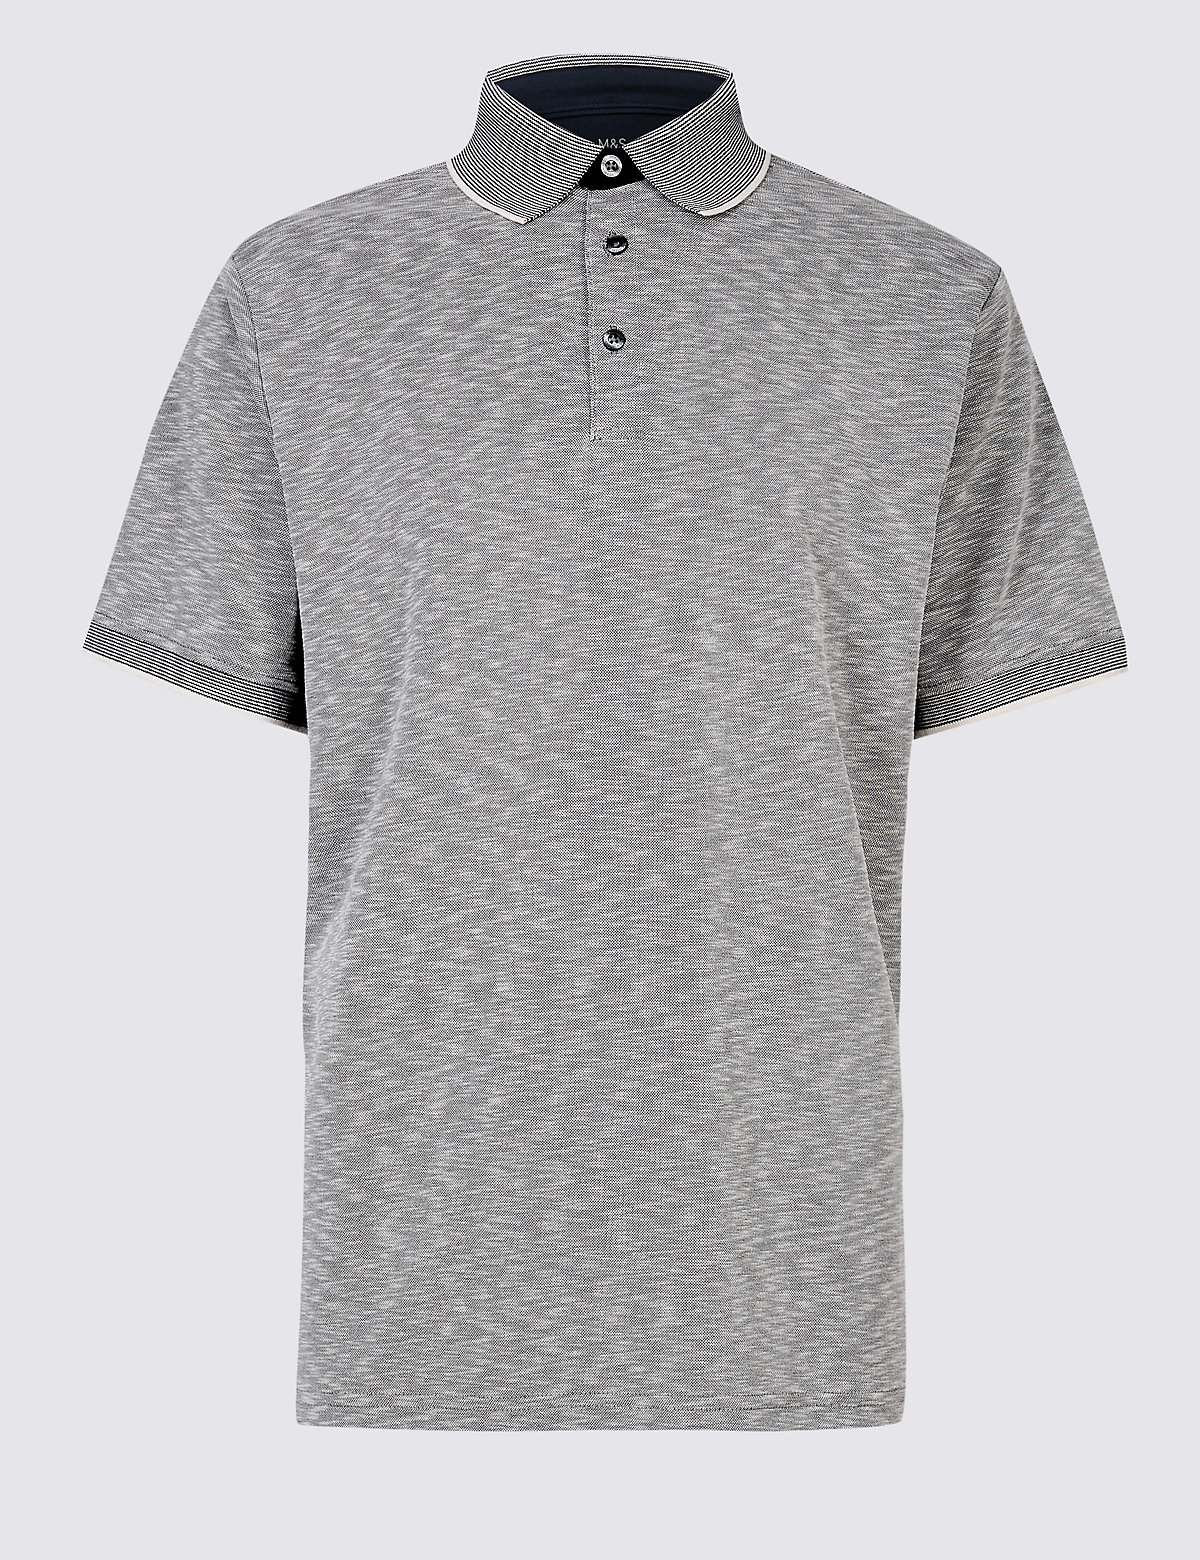 Marks & Spencer Navy Mix Slim Fit Modal Rich Textured Polo Shirt